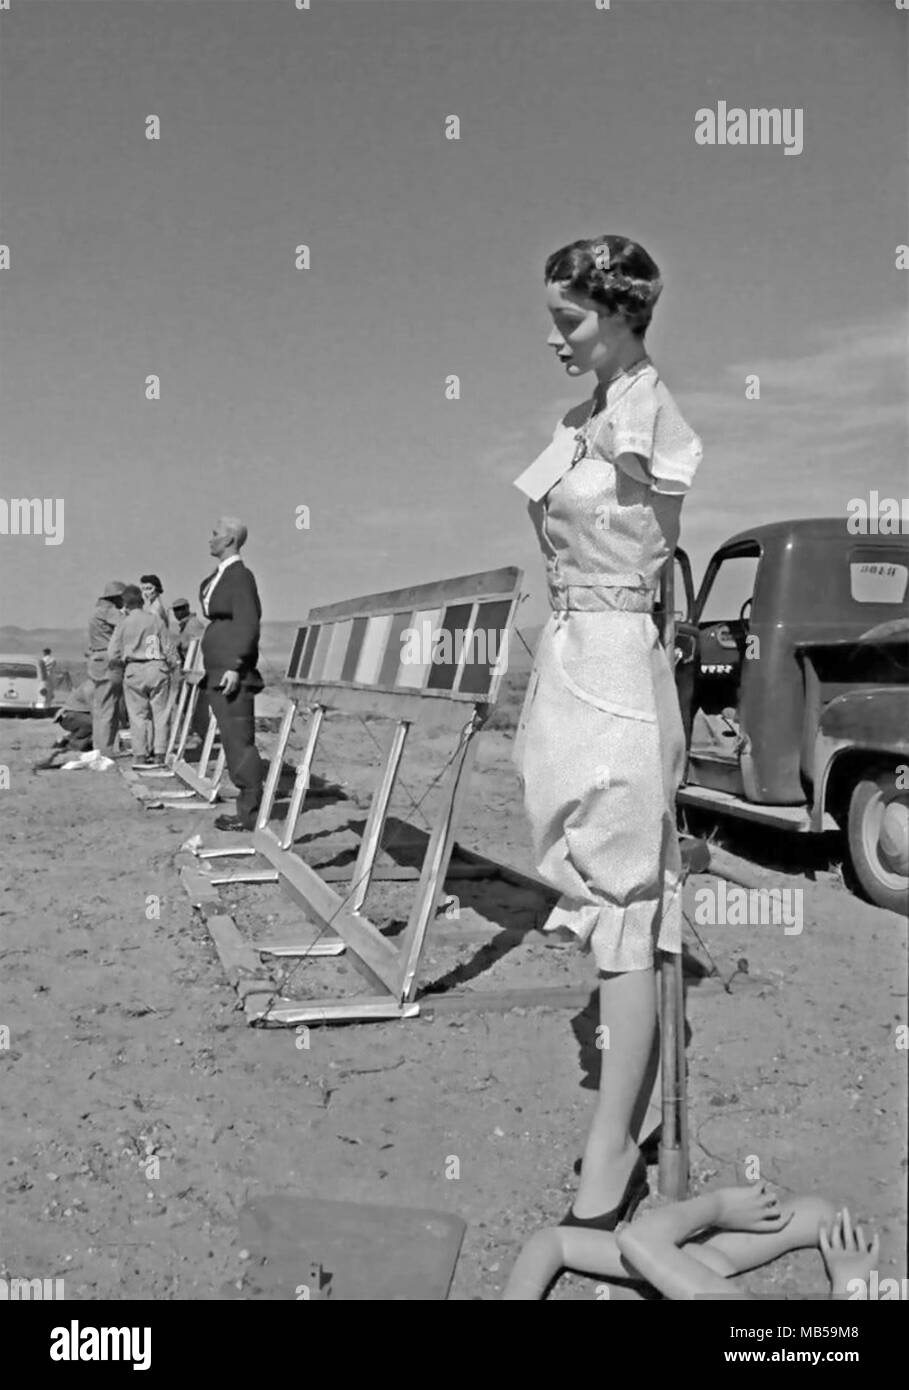 OPERATION TEAPOT Dummies are prepared for the series of nuclear explosion tests in early 1955 at the US Army Nevada Test Site. - Stock Image